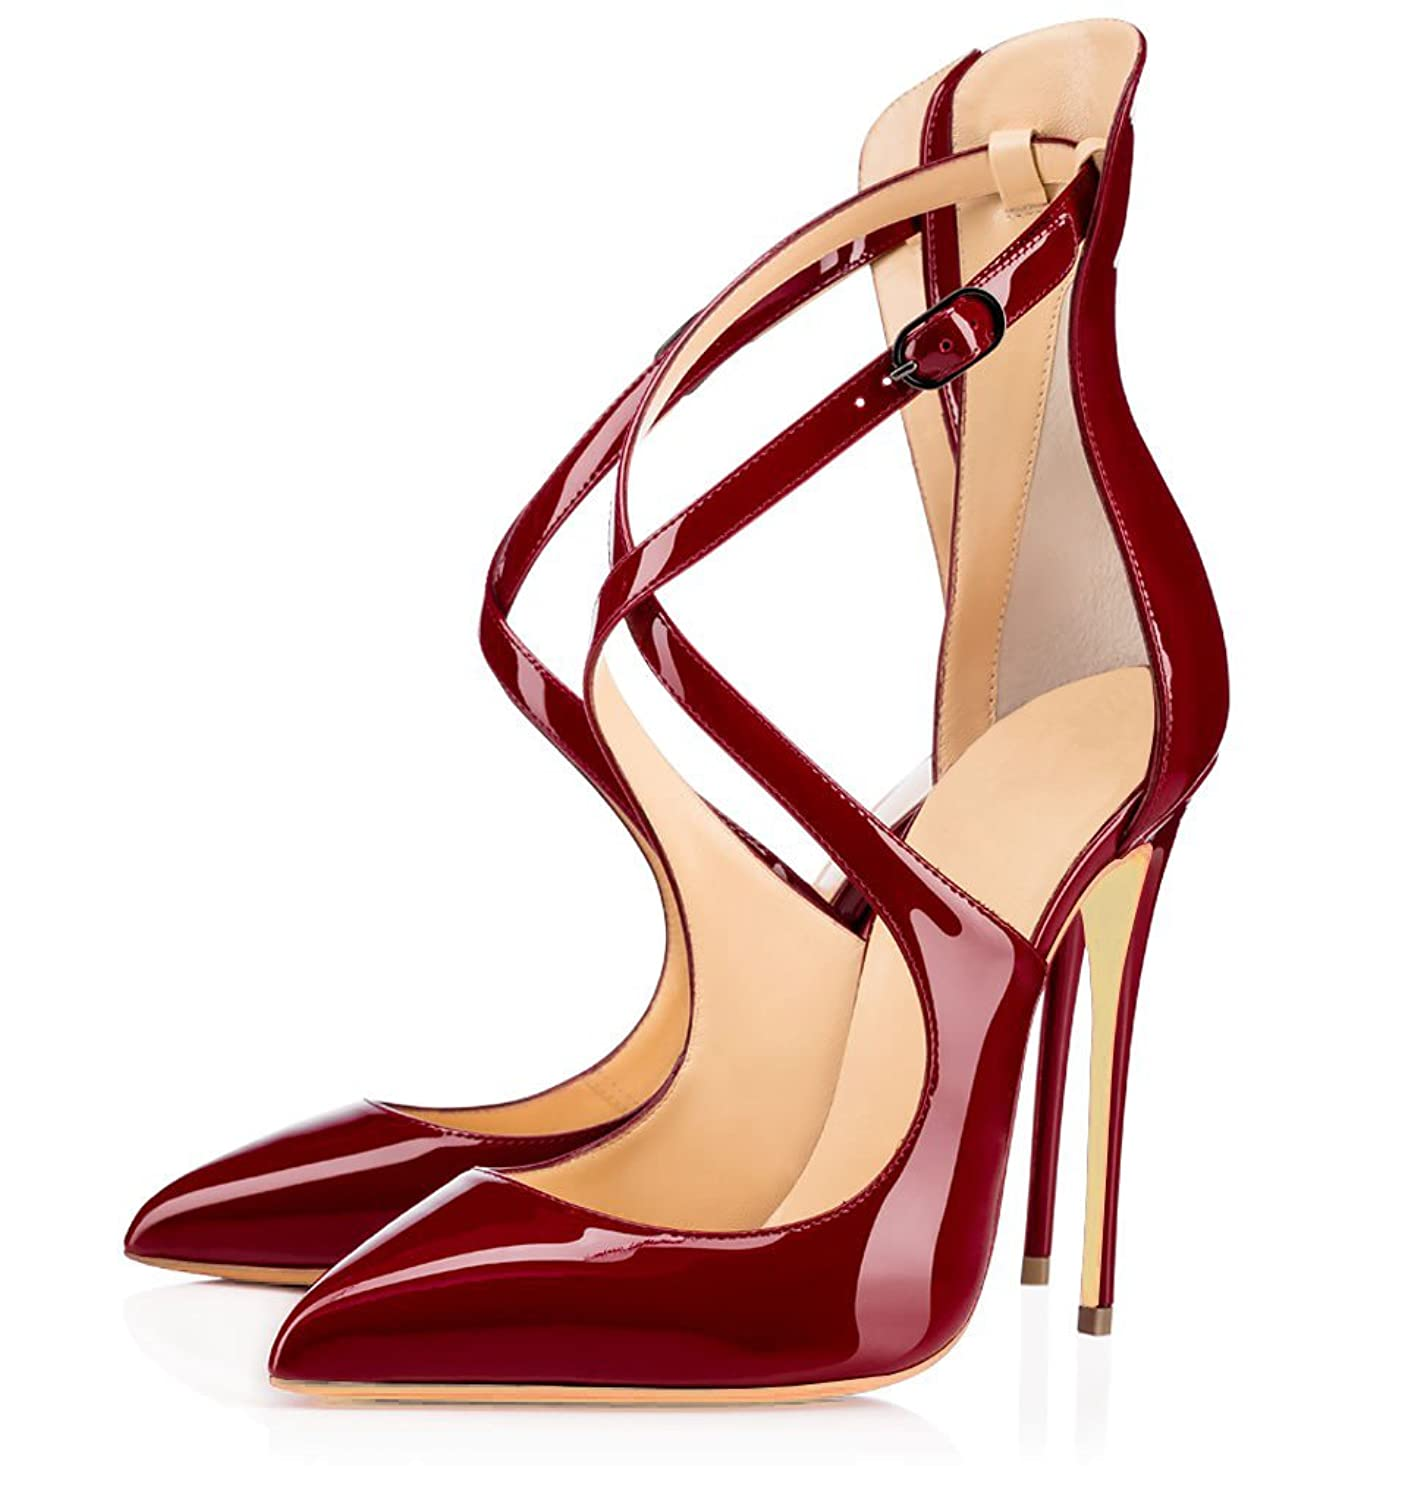 uBeauty Womens Court Shoes Stiletto High Heels Slip On Pumps Pointed Toe  Shoes Classic Cross Strap Shoes: Amazon.co.uk: Shoes & Bags